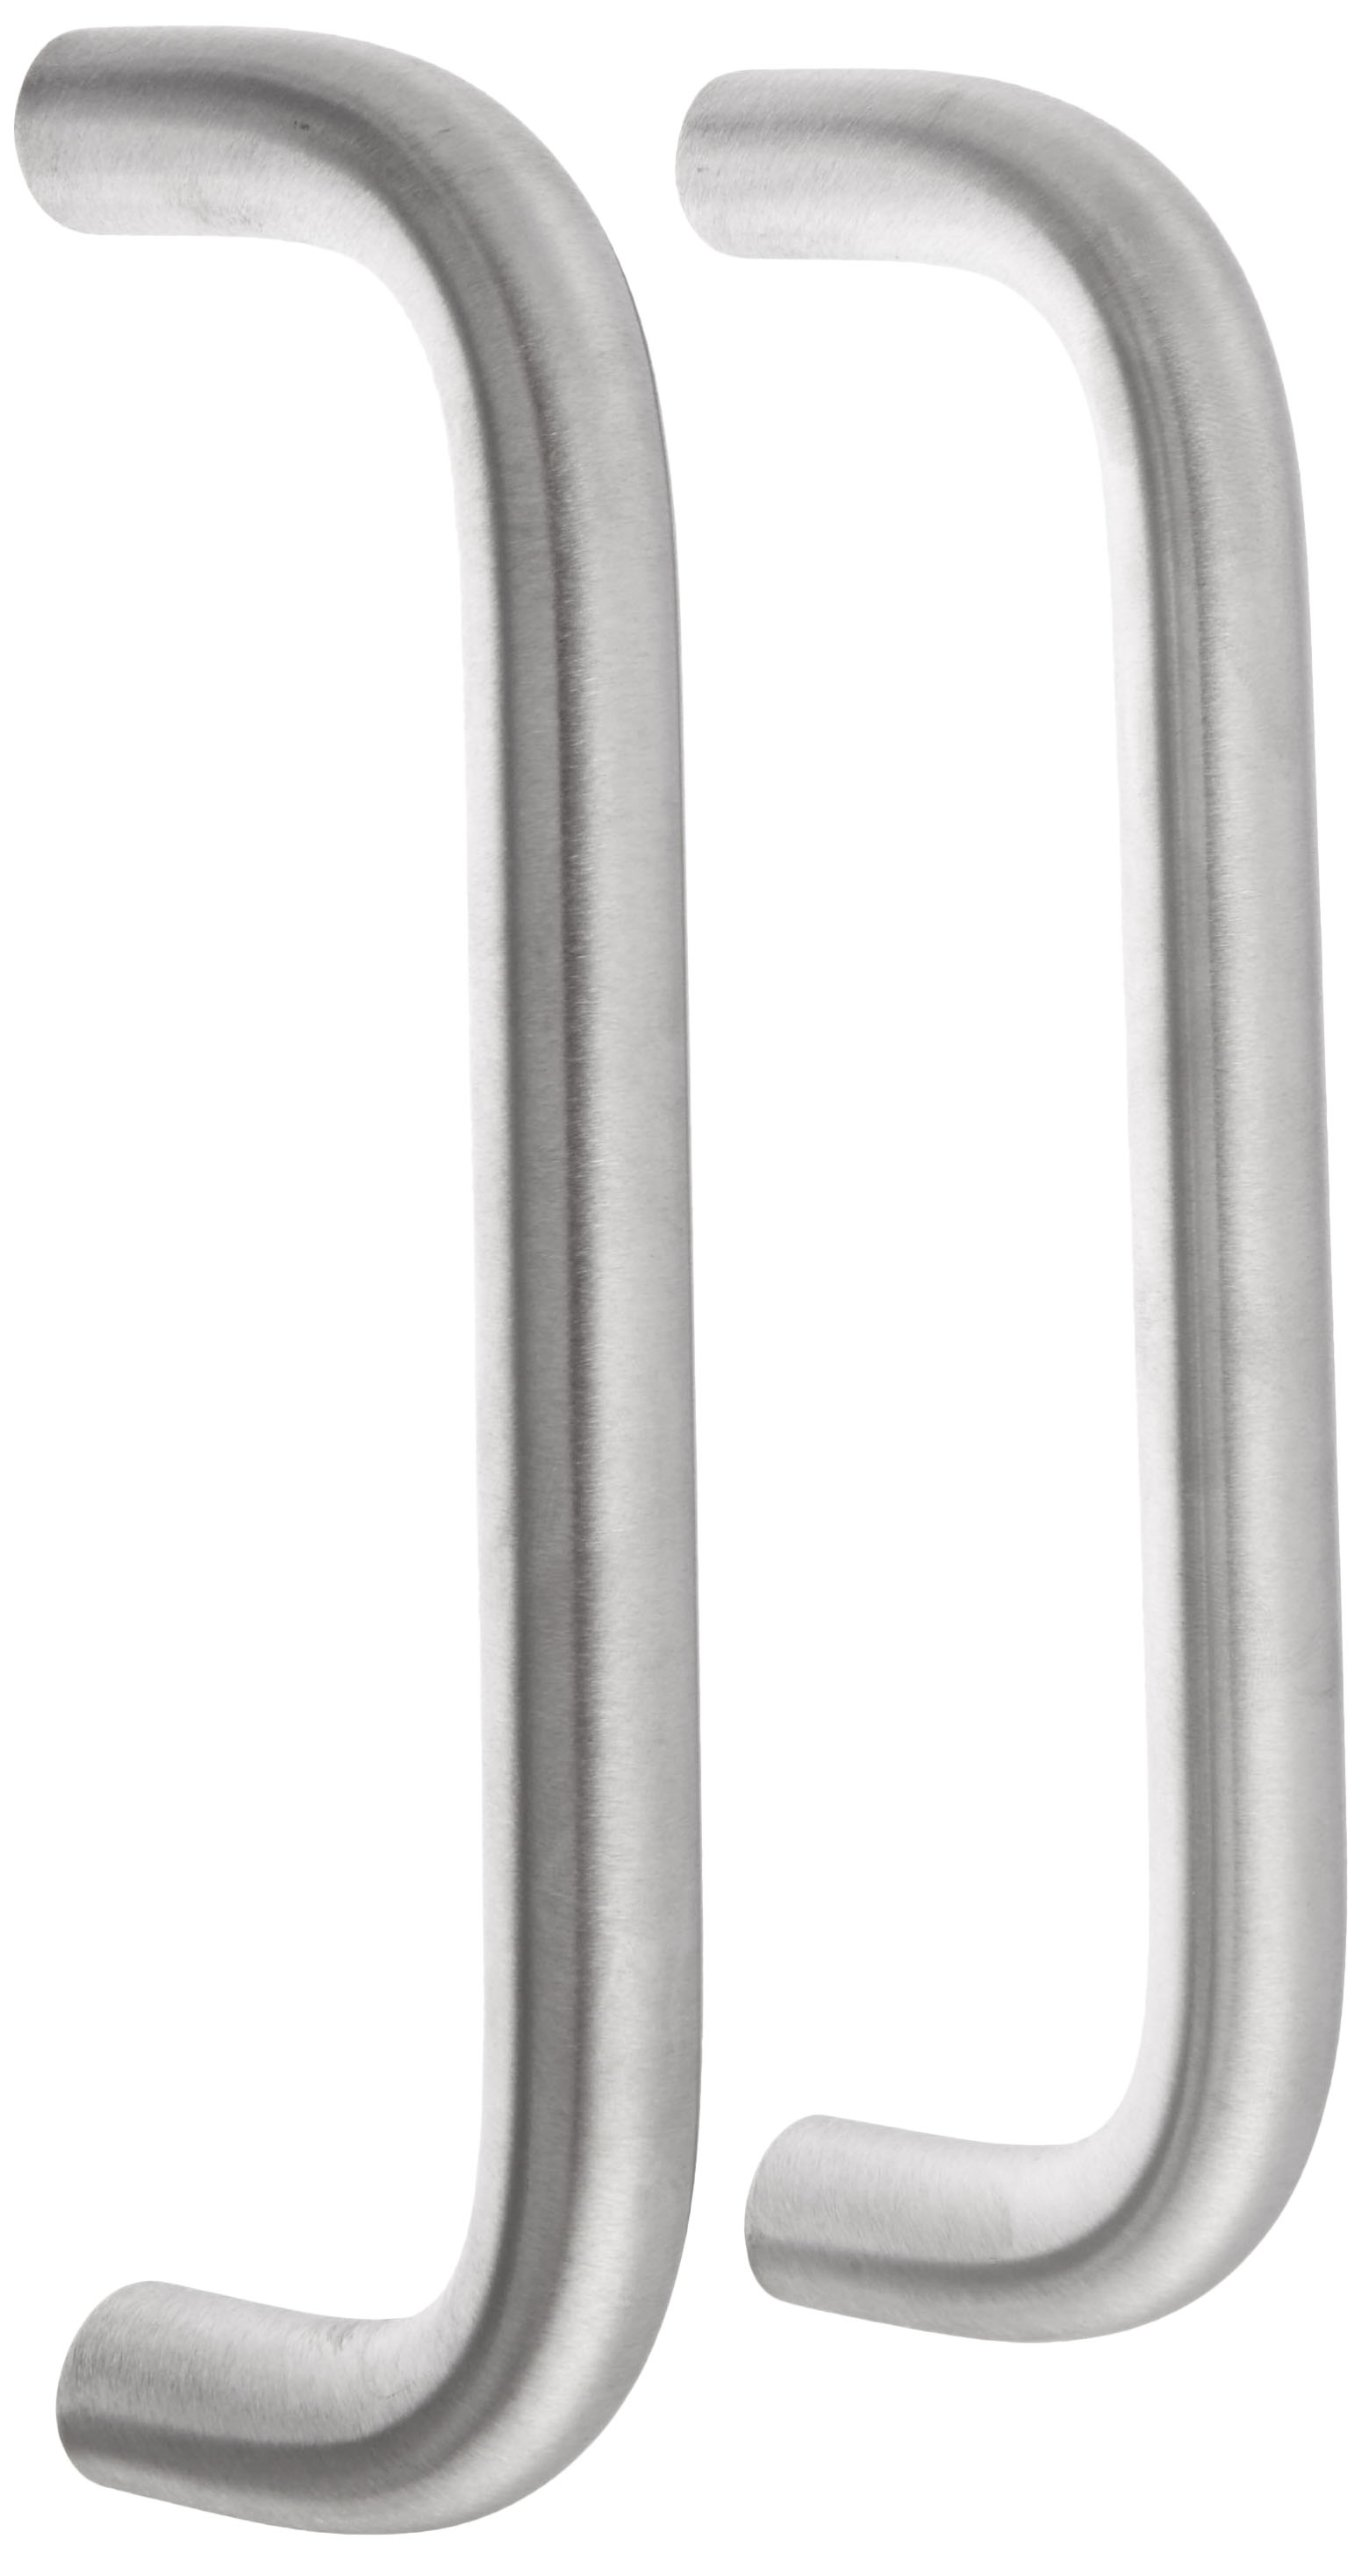 Rockwood 107BTB5.32D Stainless Steel Straight Door Pull Set for 1-3/4'' Metal or Wood Door, 3/4'' Diameter x 8'' Center-to-Center, Type 5 Back to Back Mount, Satin Finish